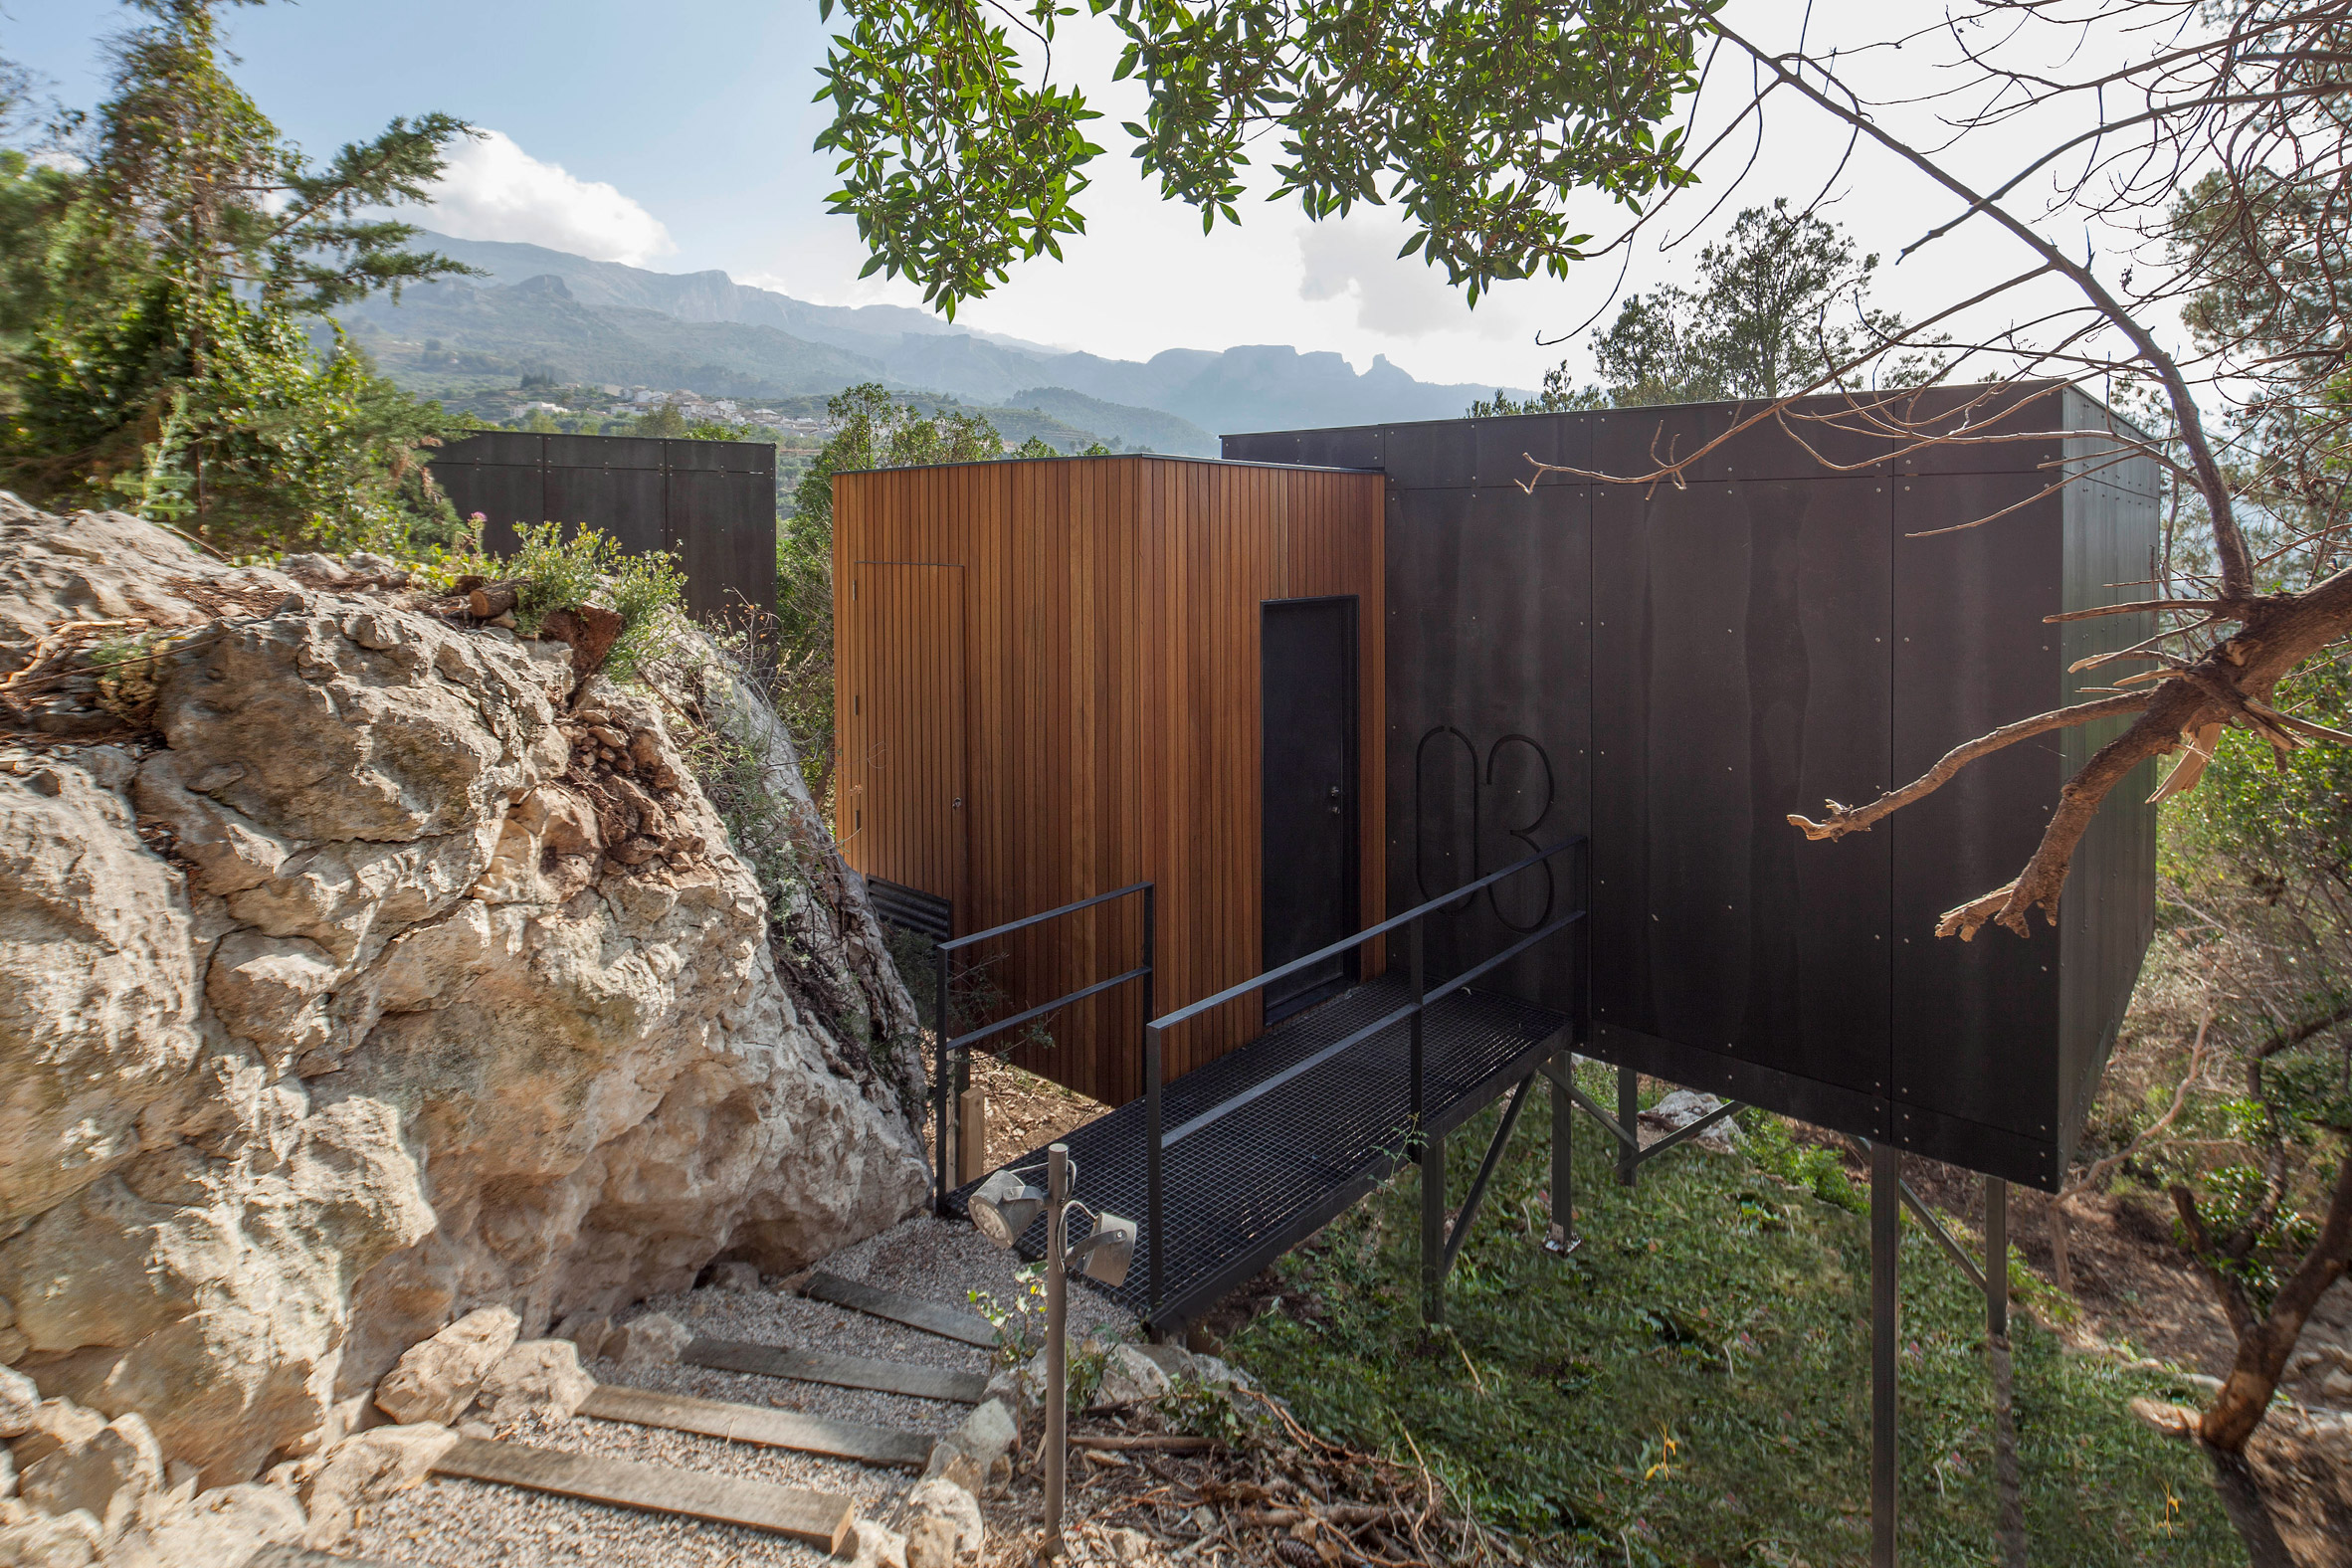 Cabin on stilts accessed by a path along a rocky terrain by Daniel Mayo